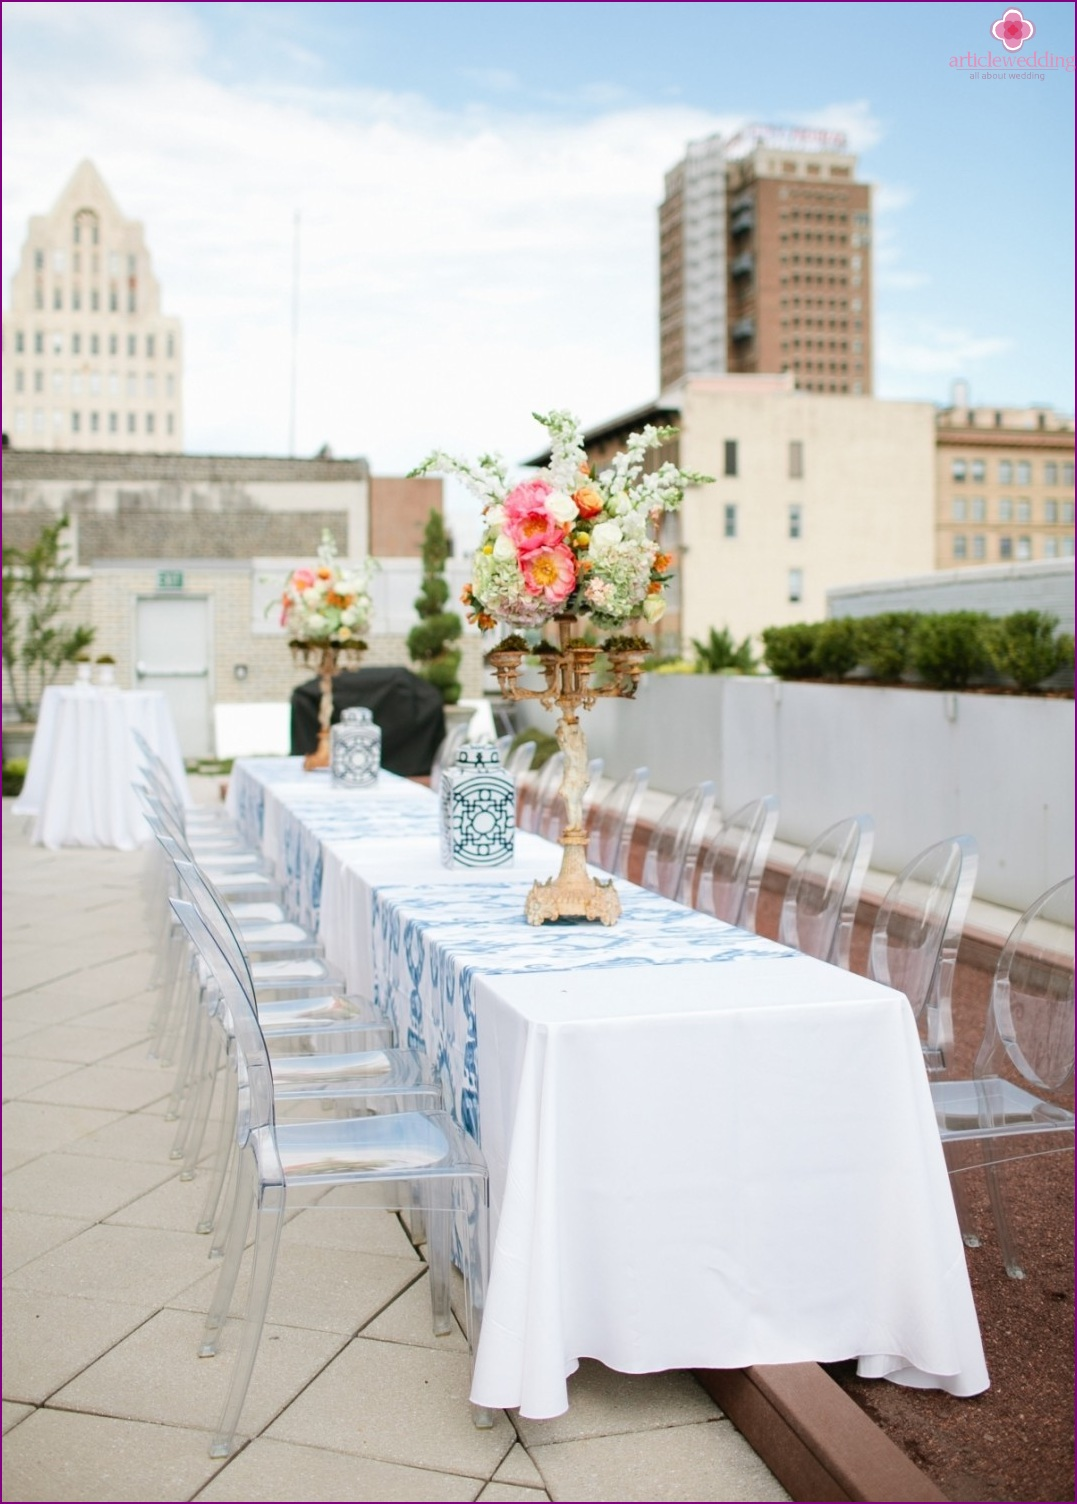 Organizing a wedding on the roof